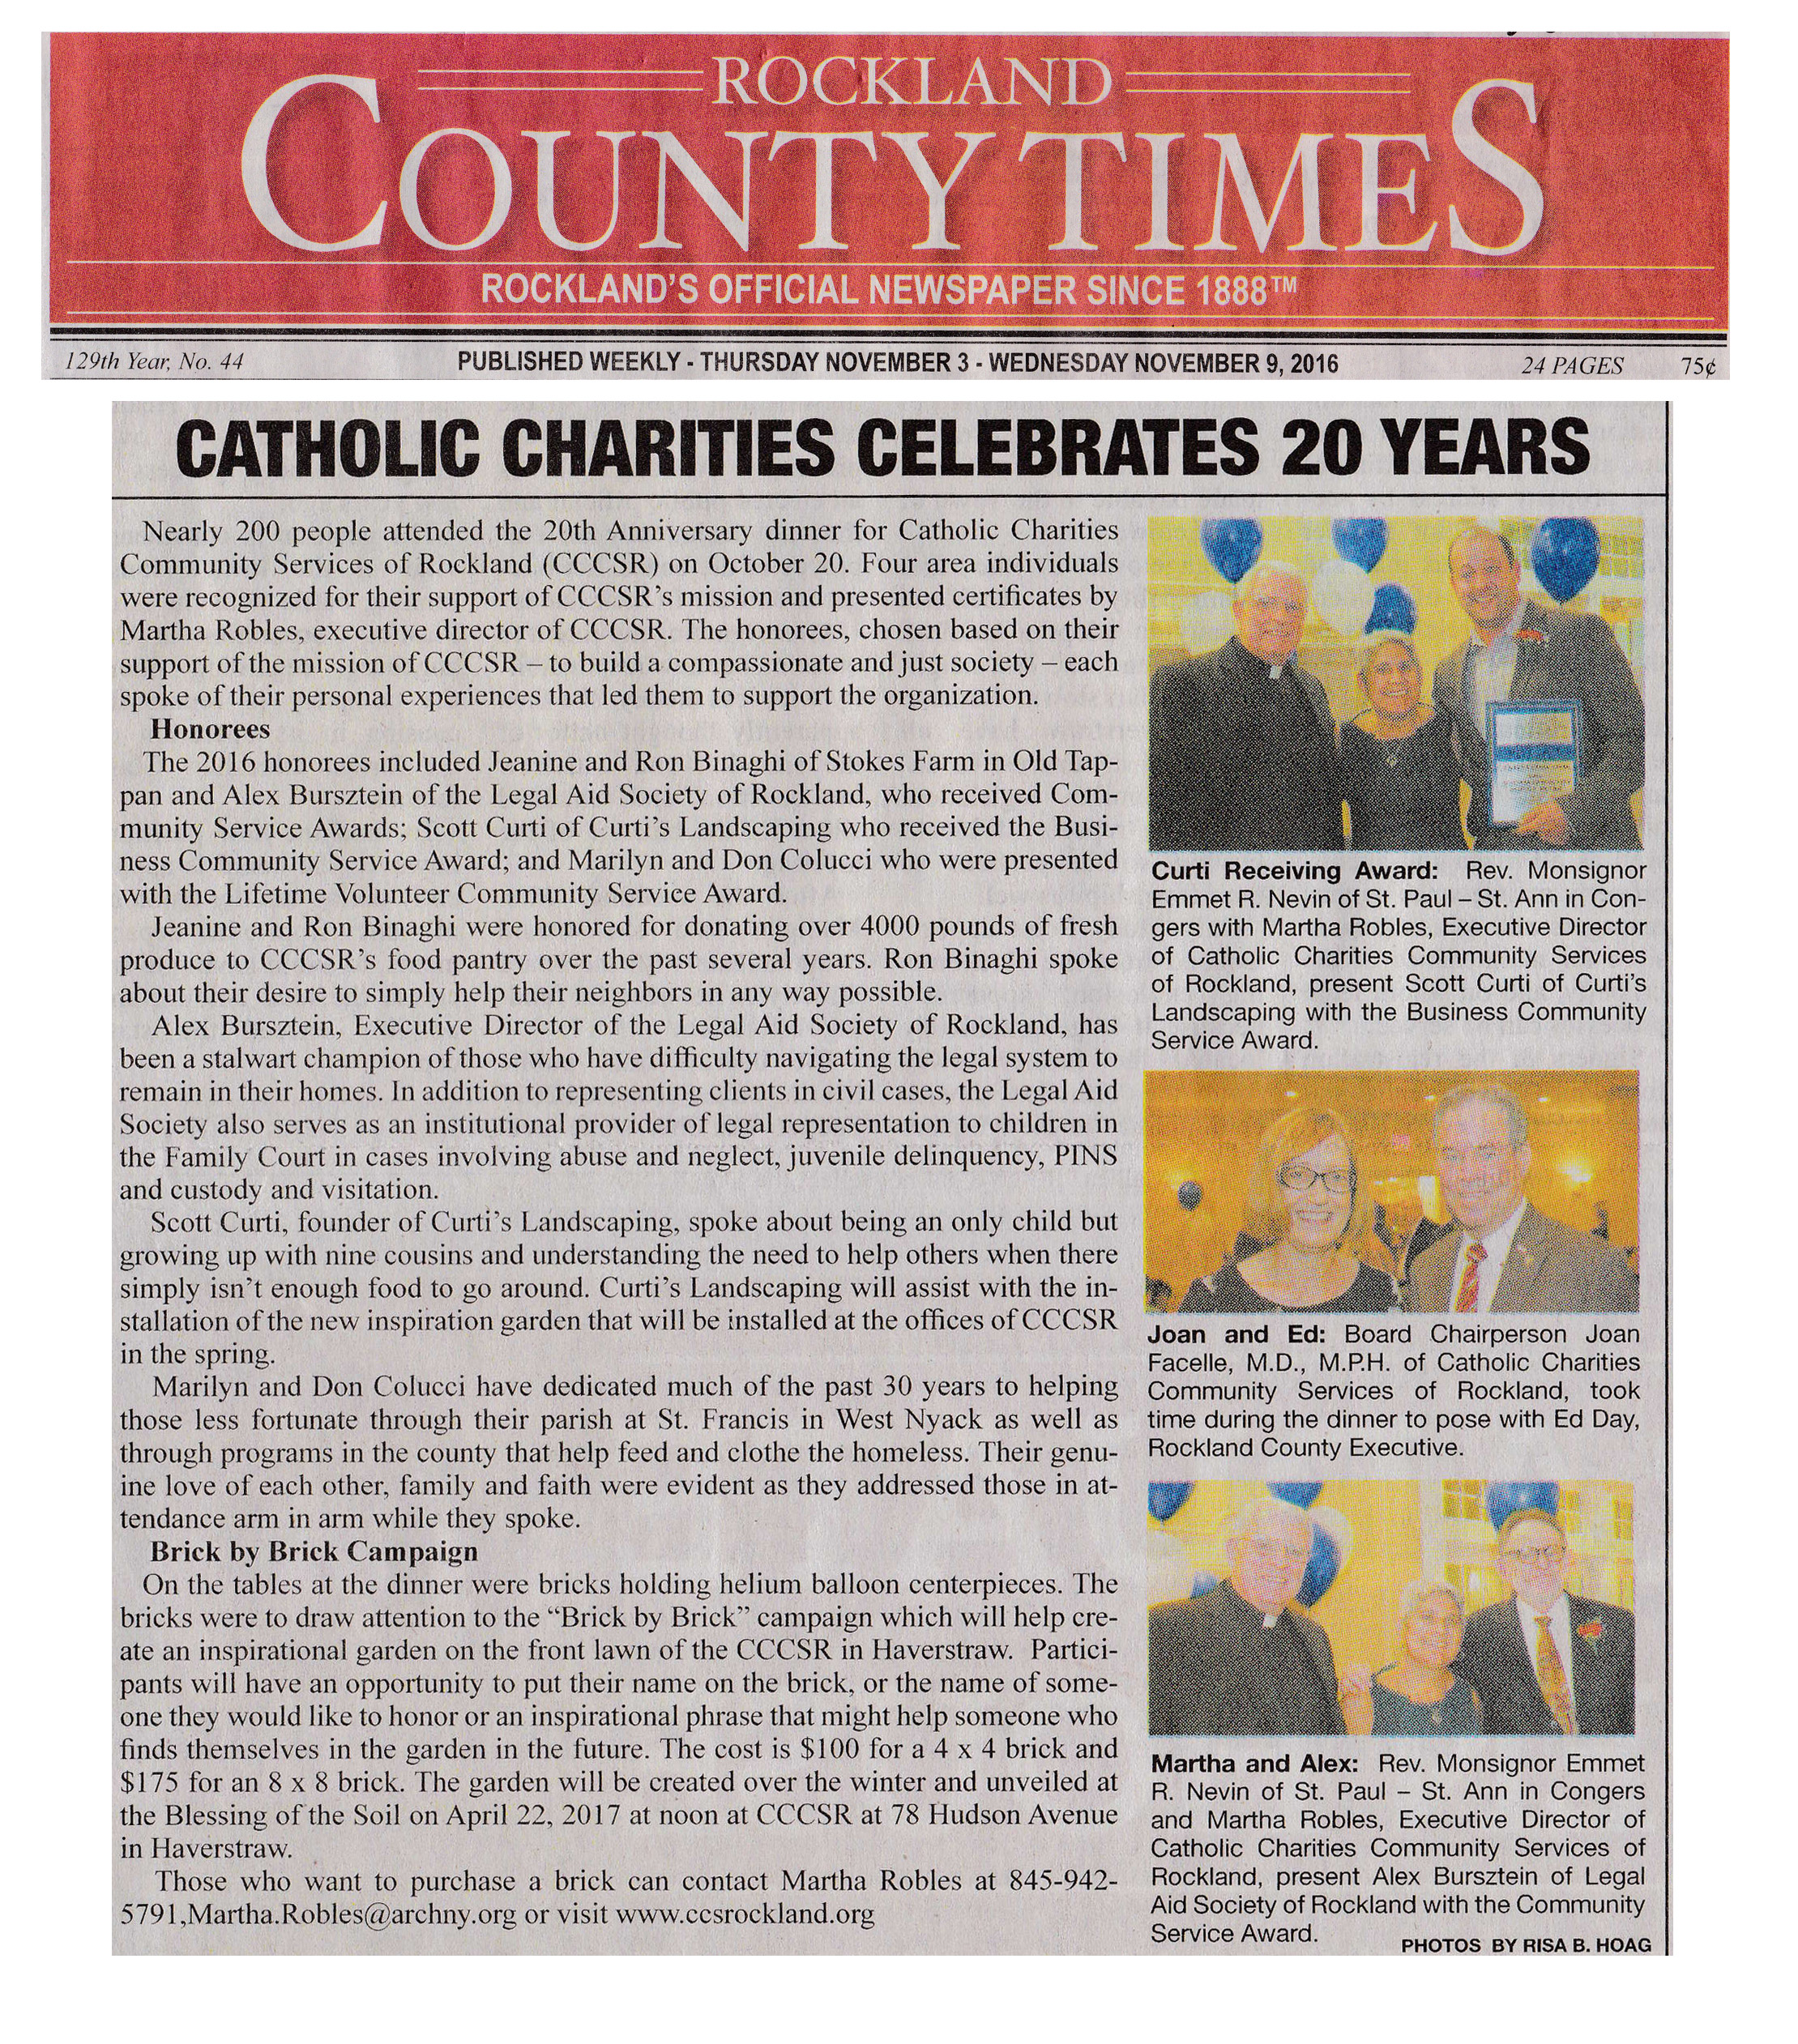 catholic charities dinner wrap up in rockland county times copy.jpg